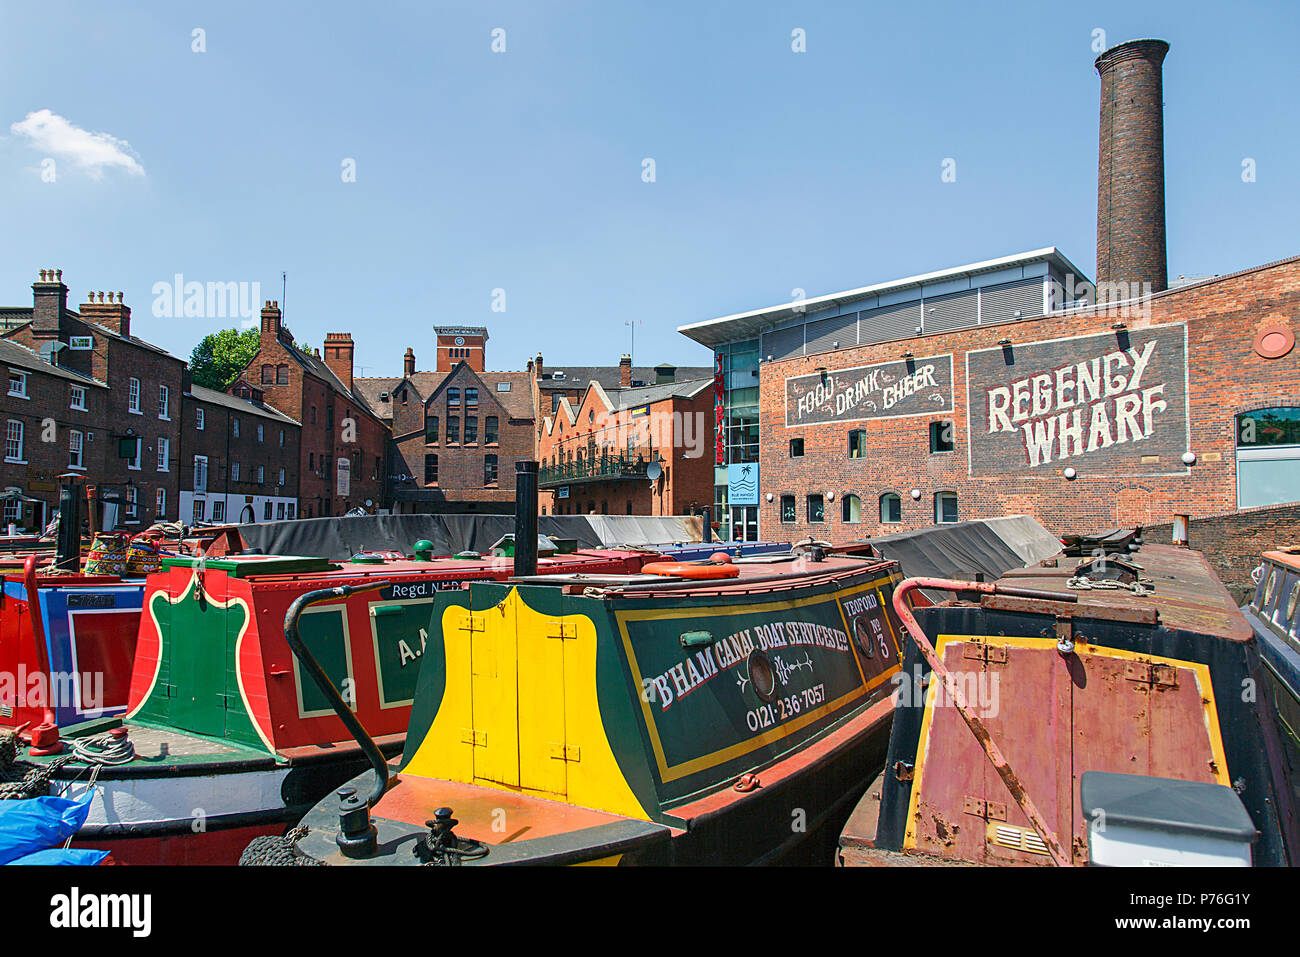 Birmingham, UK: June 29, 2018: Regency Wharf at Gas Street Basin. The restored canal system in Birmingham central is a national heritage landmark. - Stock Image